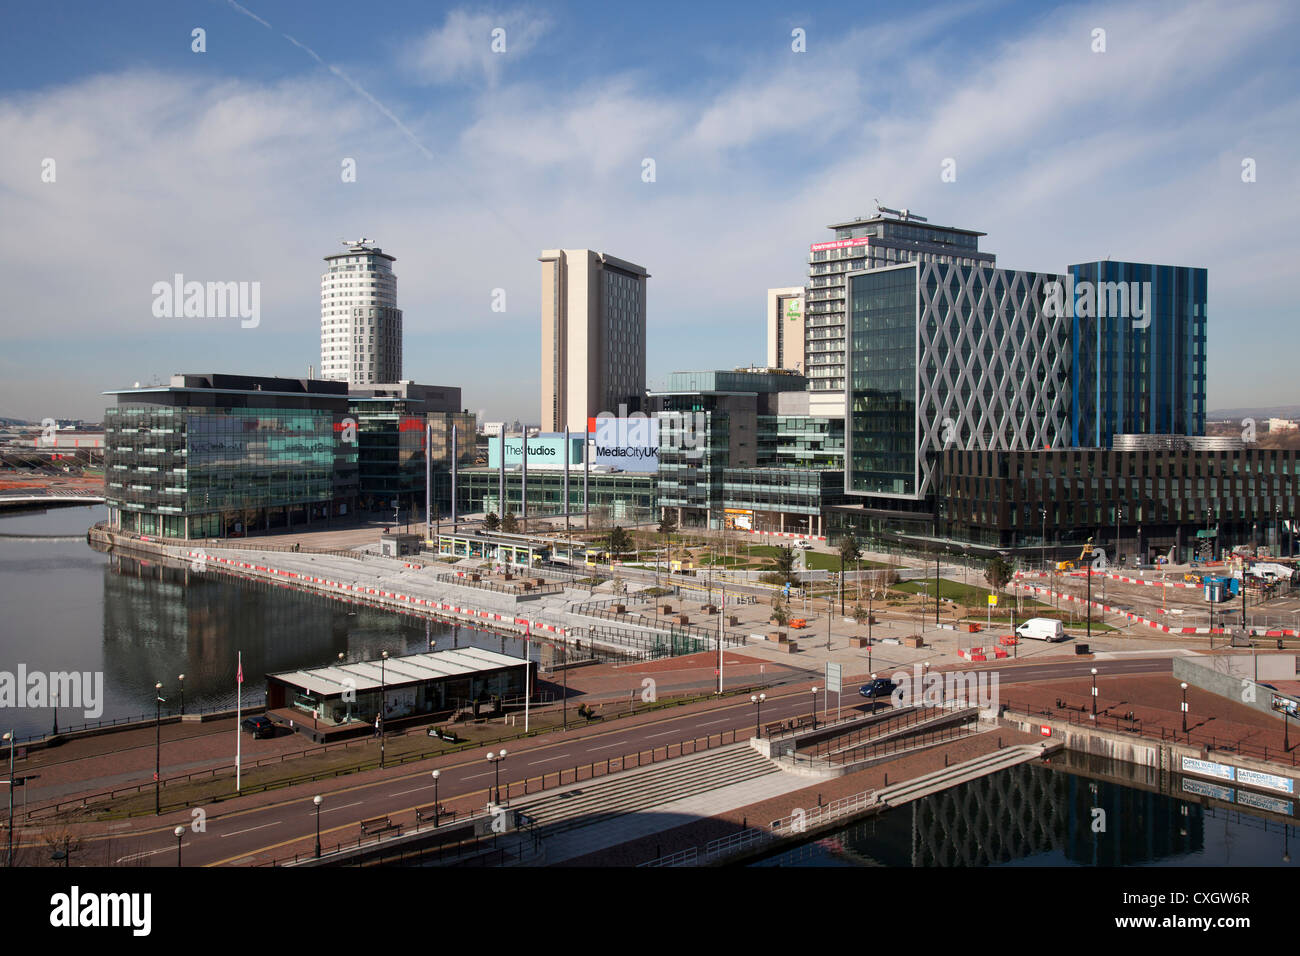 The Media city UK complex at Salford Quays. - Stock Image